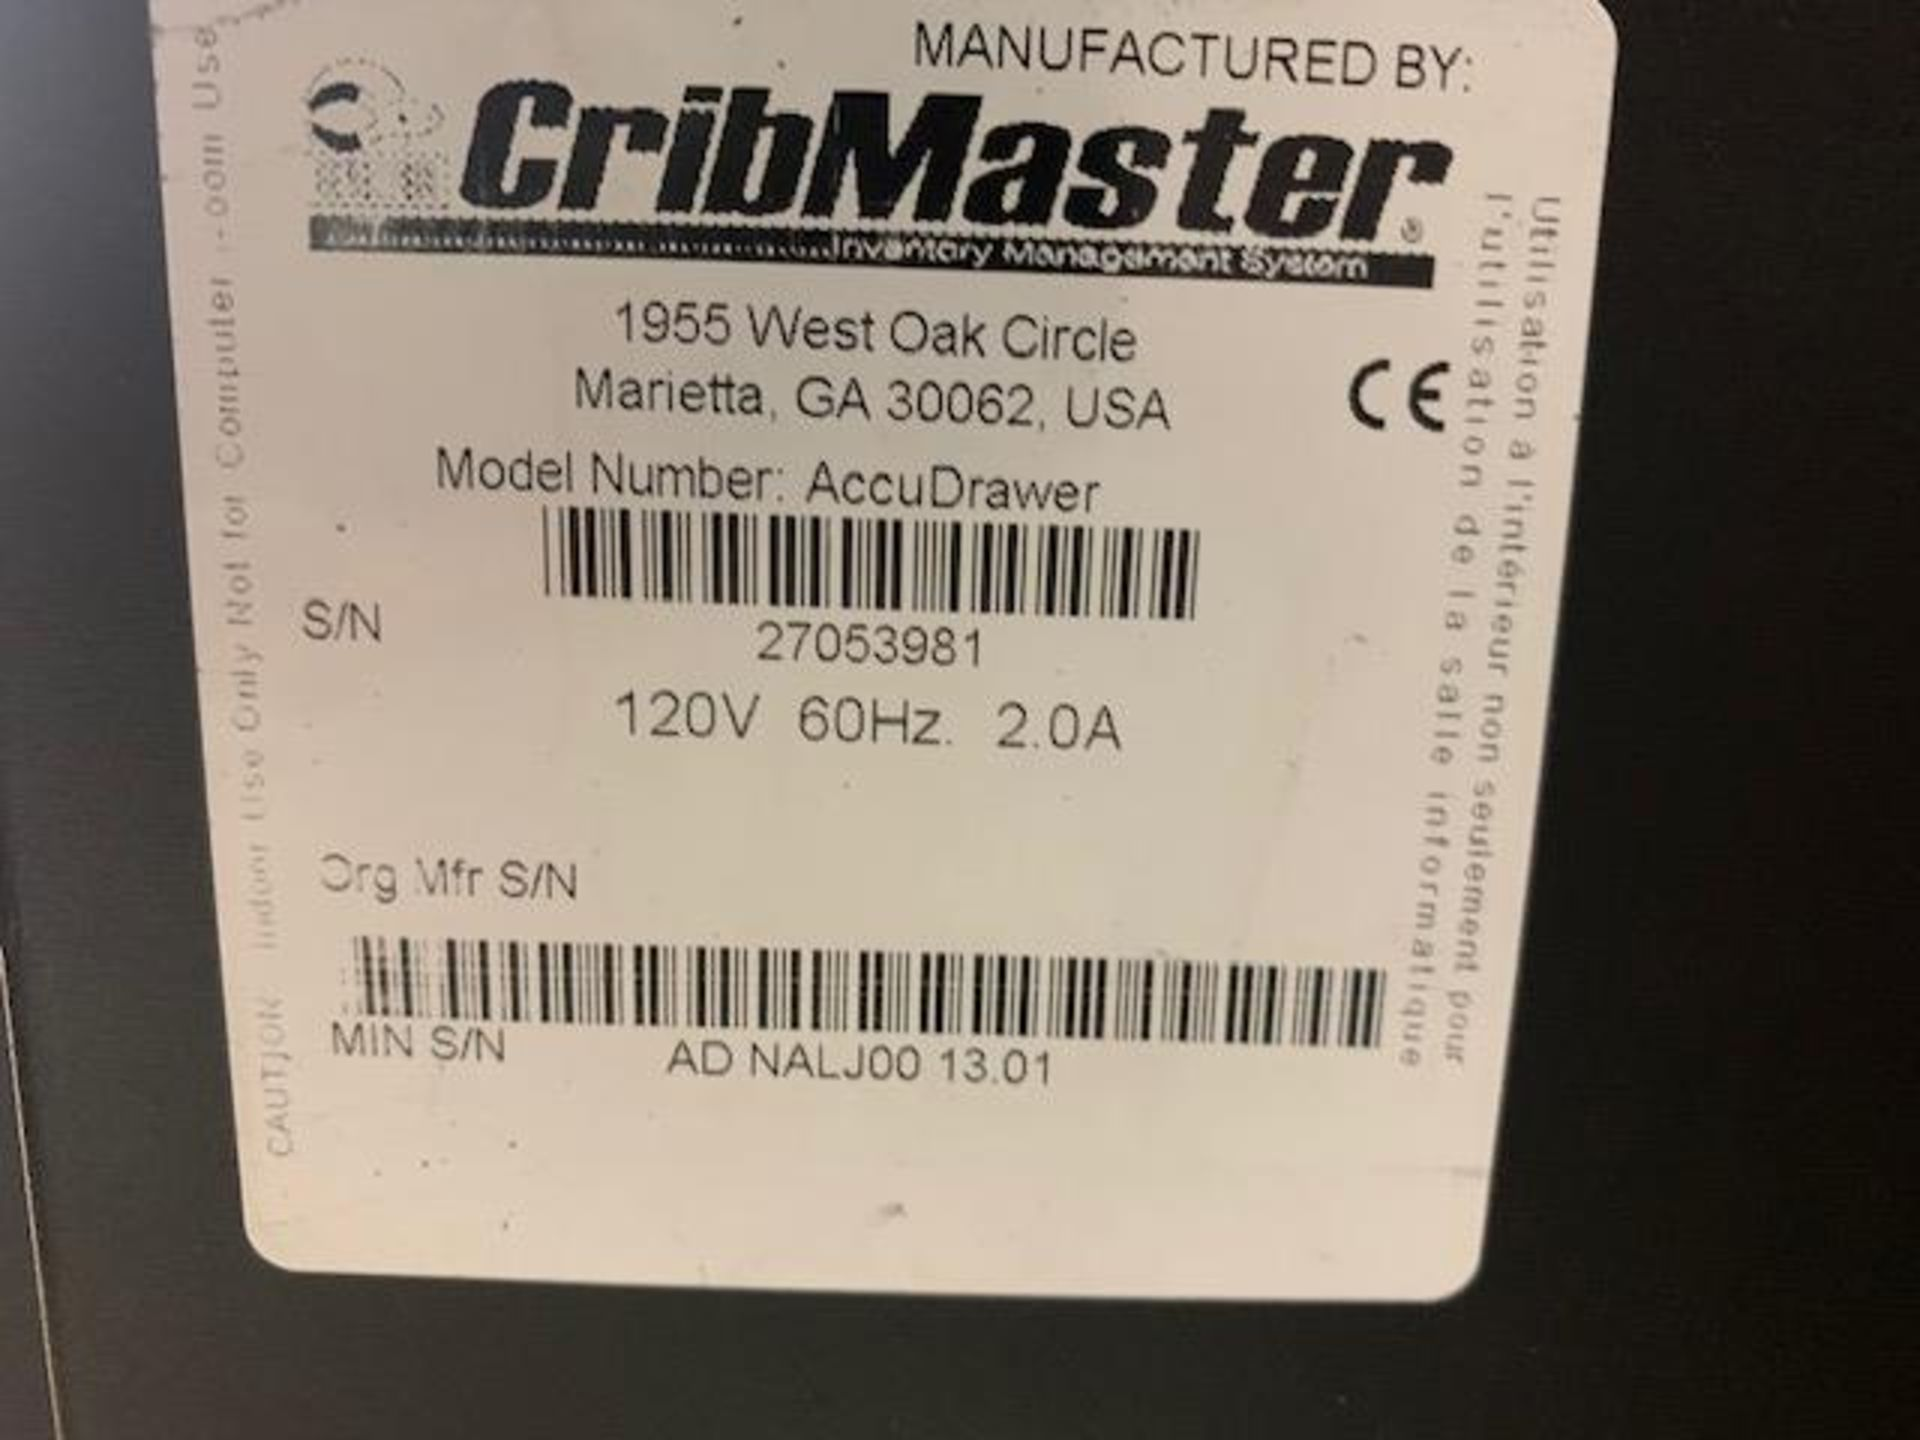 Cribmaster AccuDrawer - Image 2 of 9